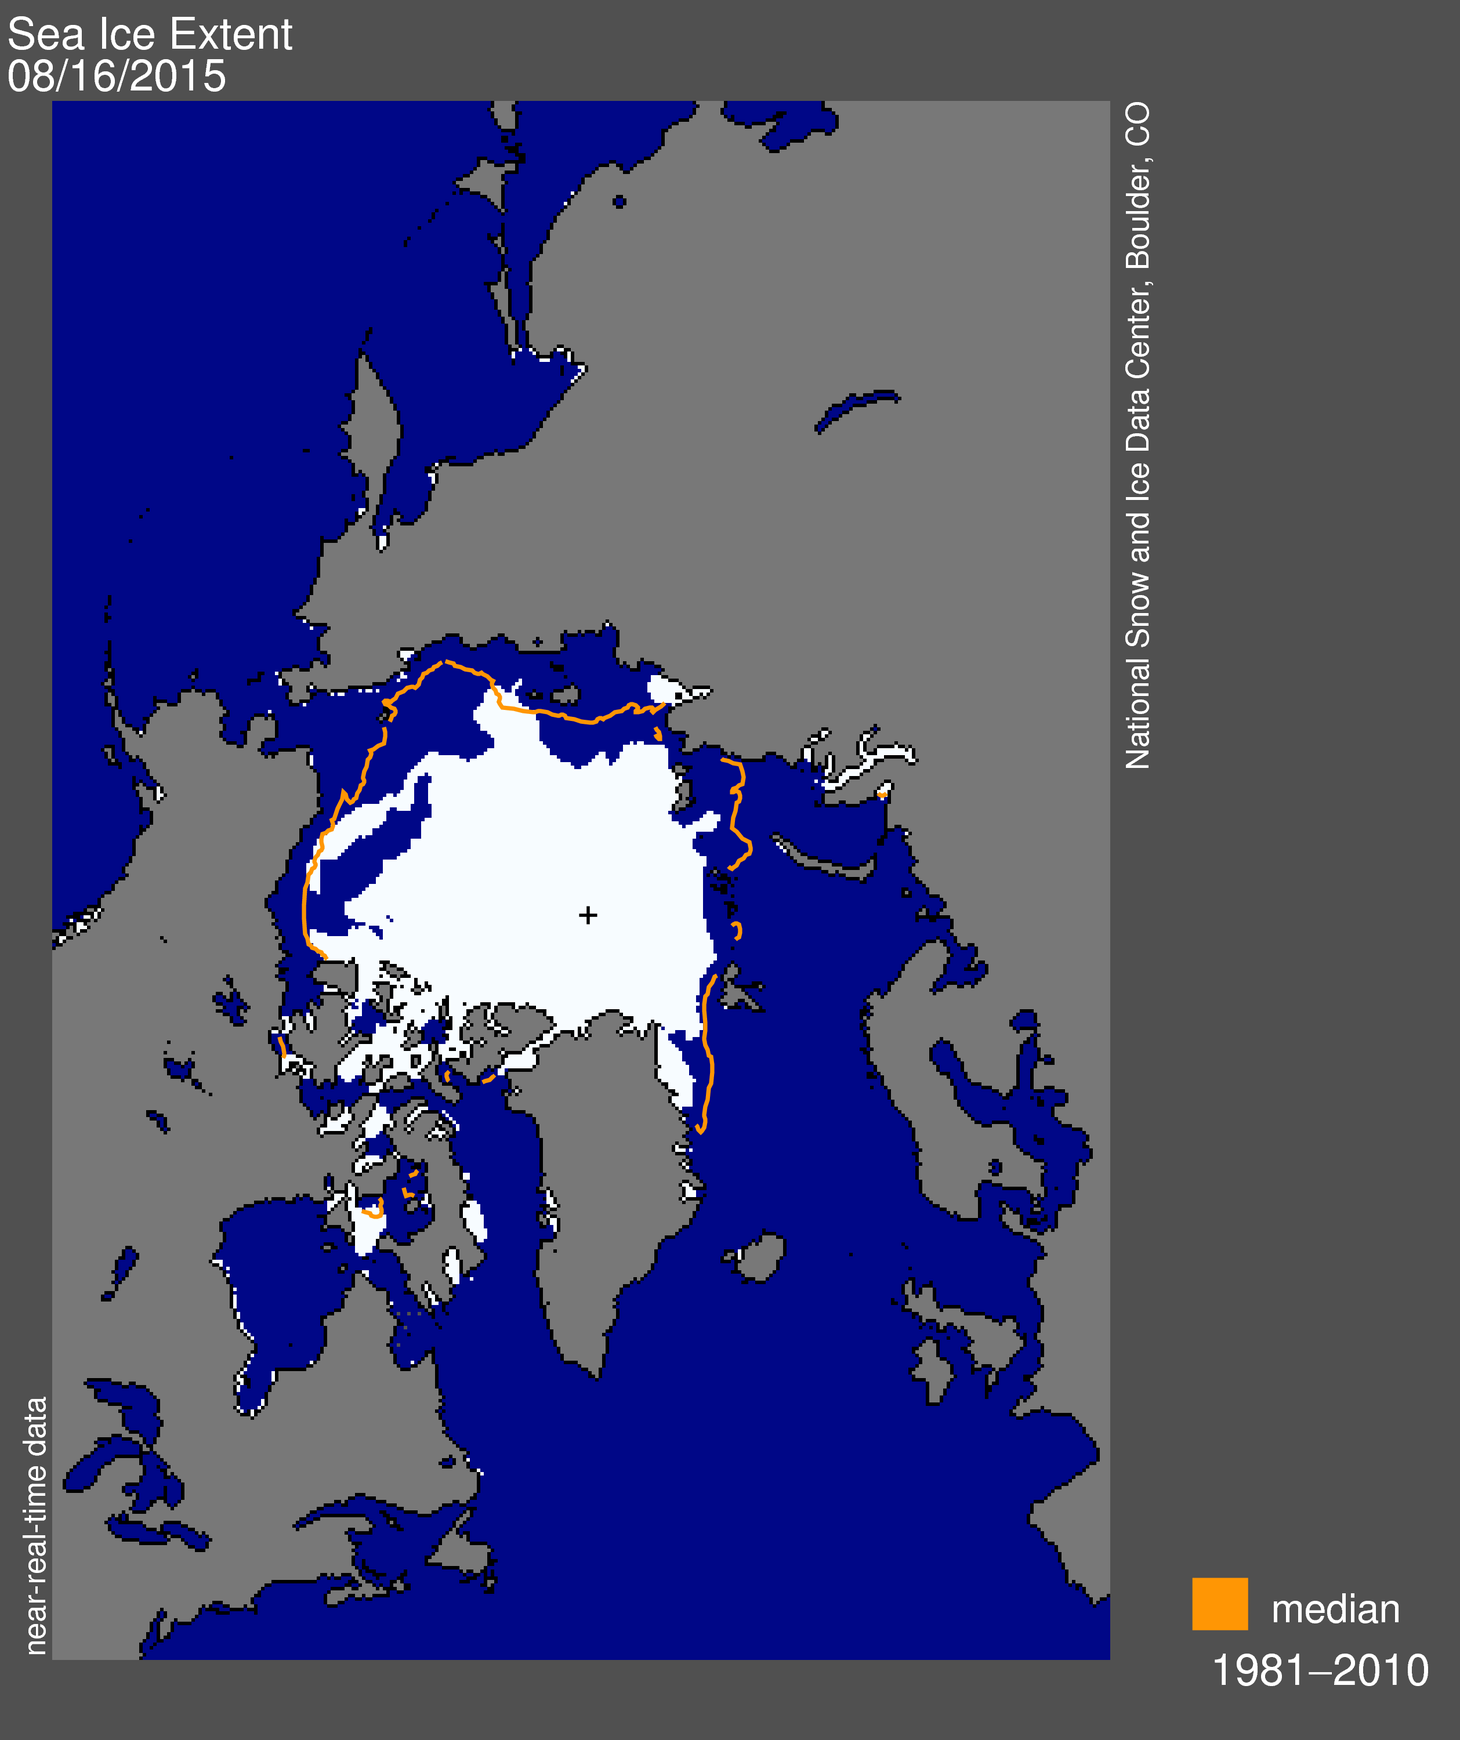 August 2015 arctic sea ice news and analysis arctic sea ice extent for august 16 2015 was 579 million square sciox Gallery